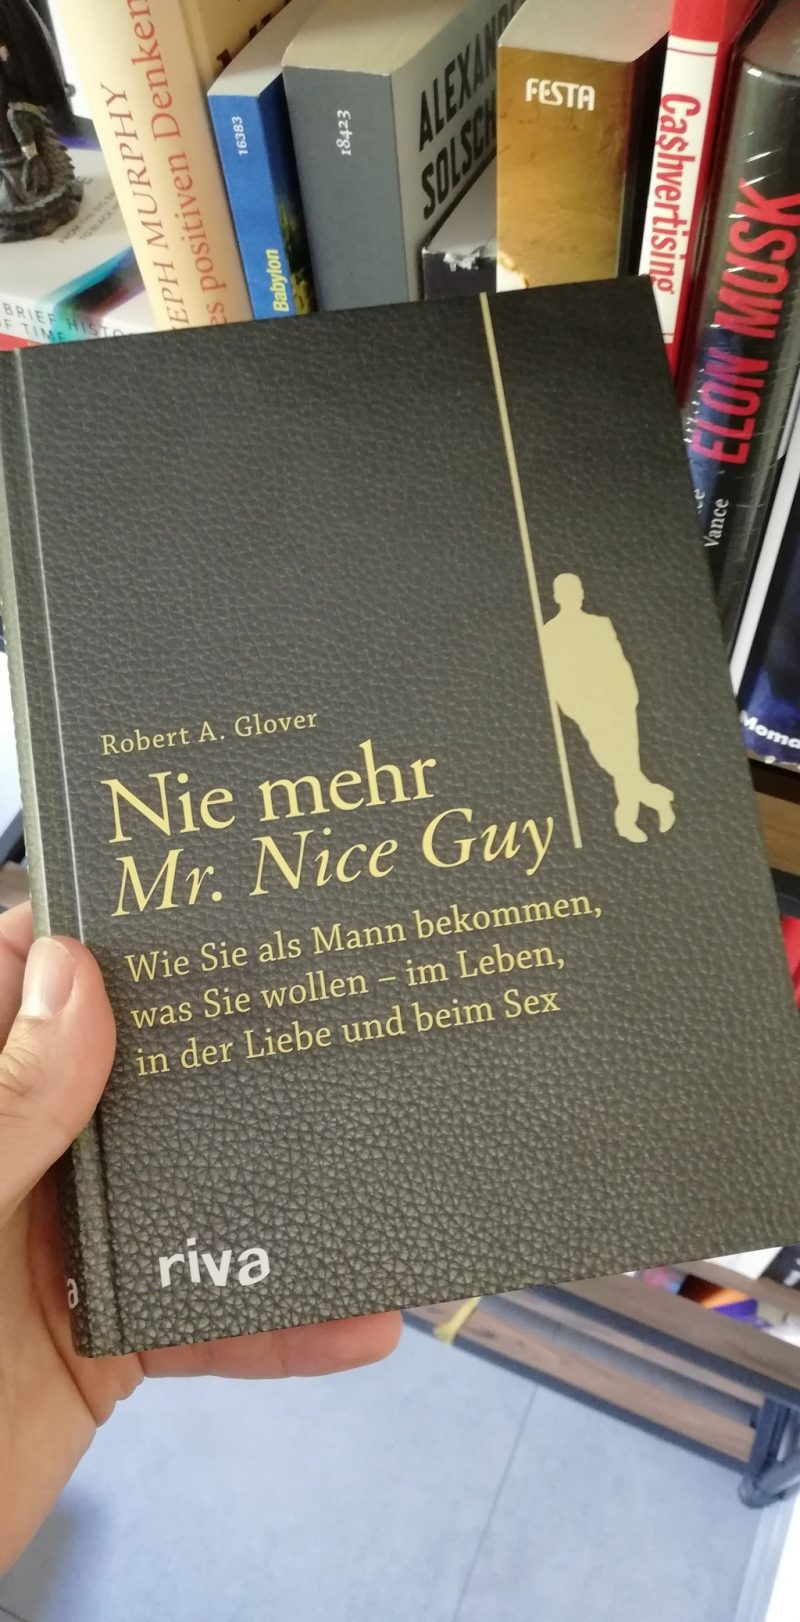 No more mister nice guy german copy